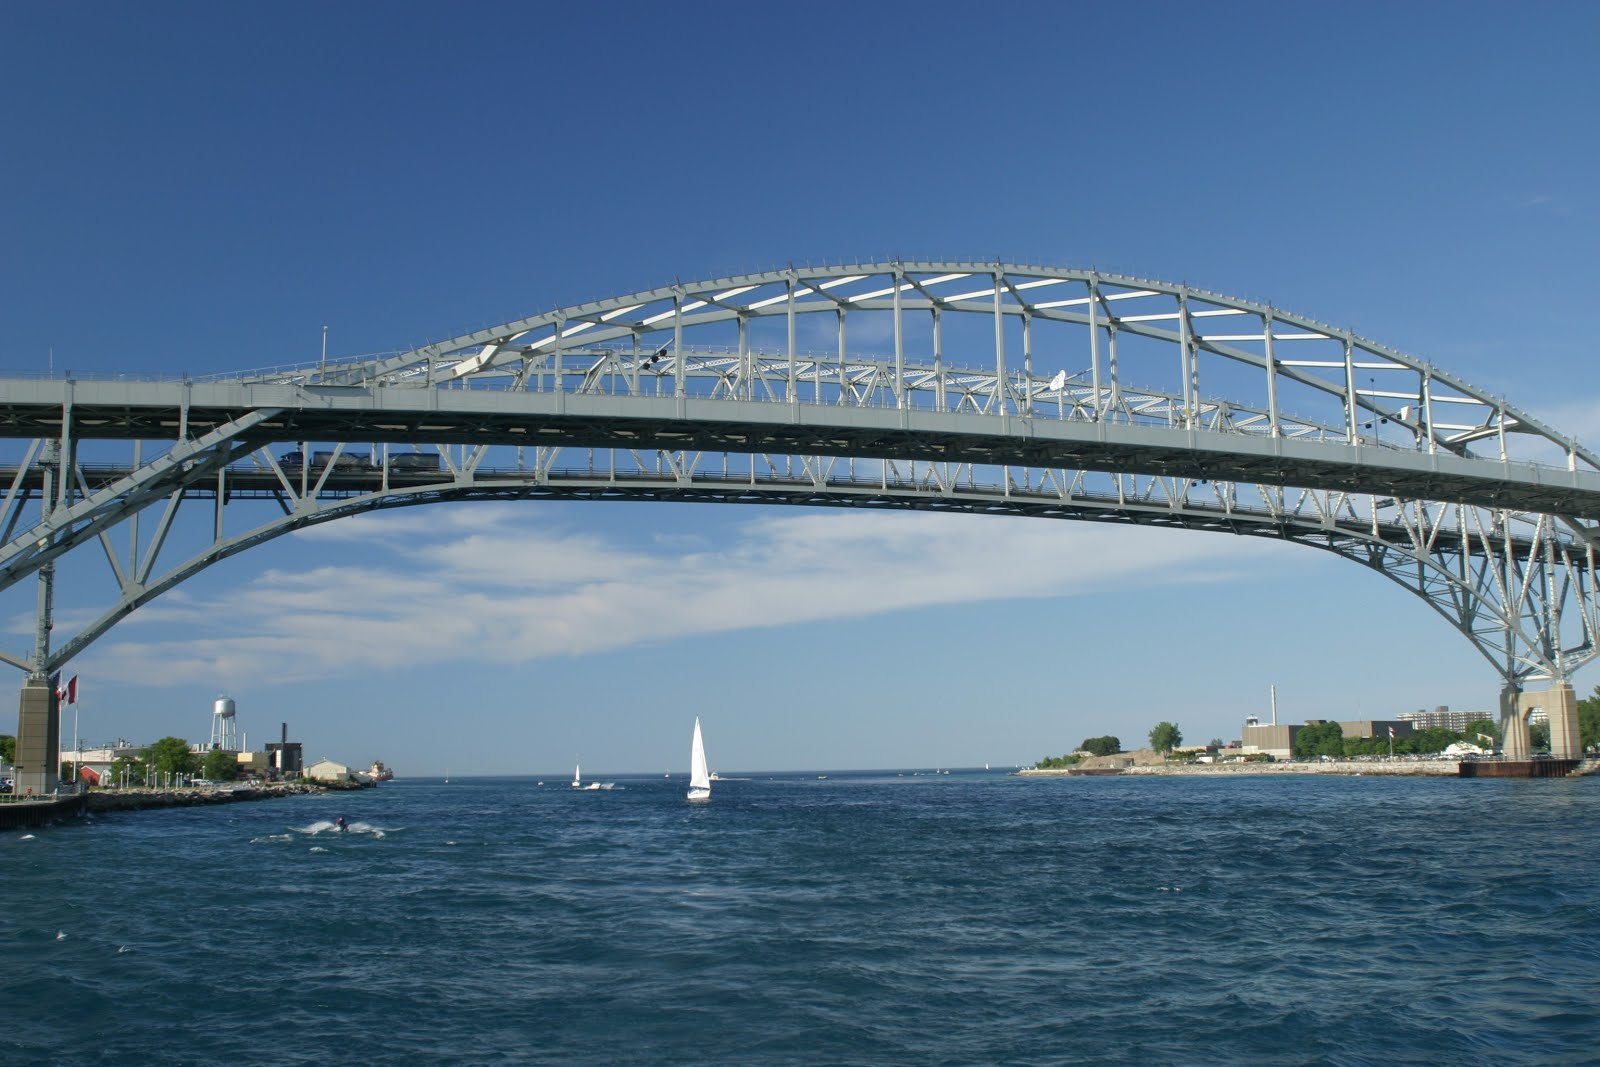 The Bluewater Bridge